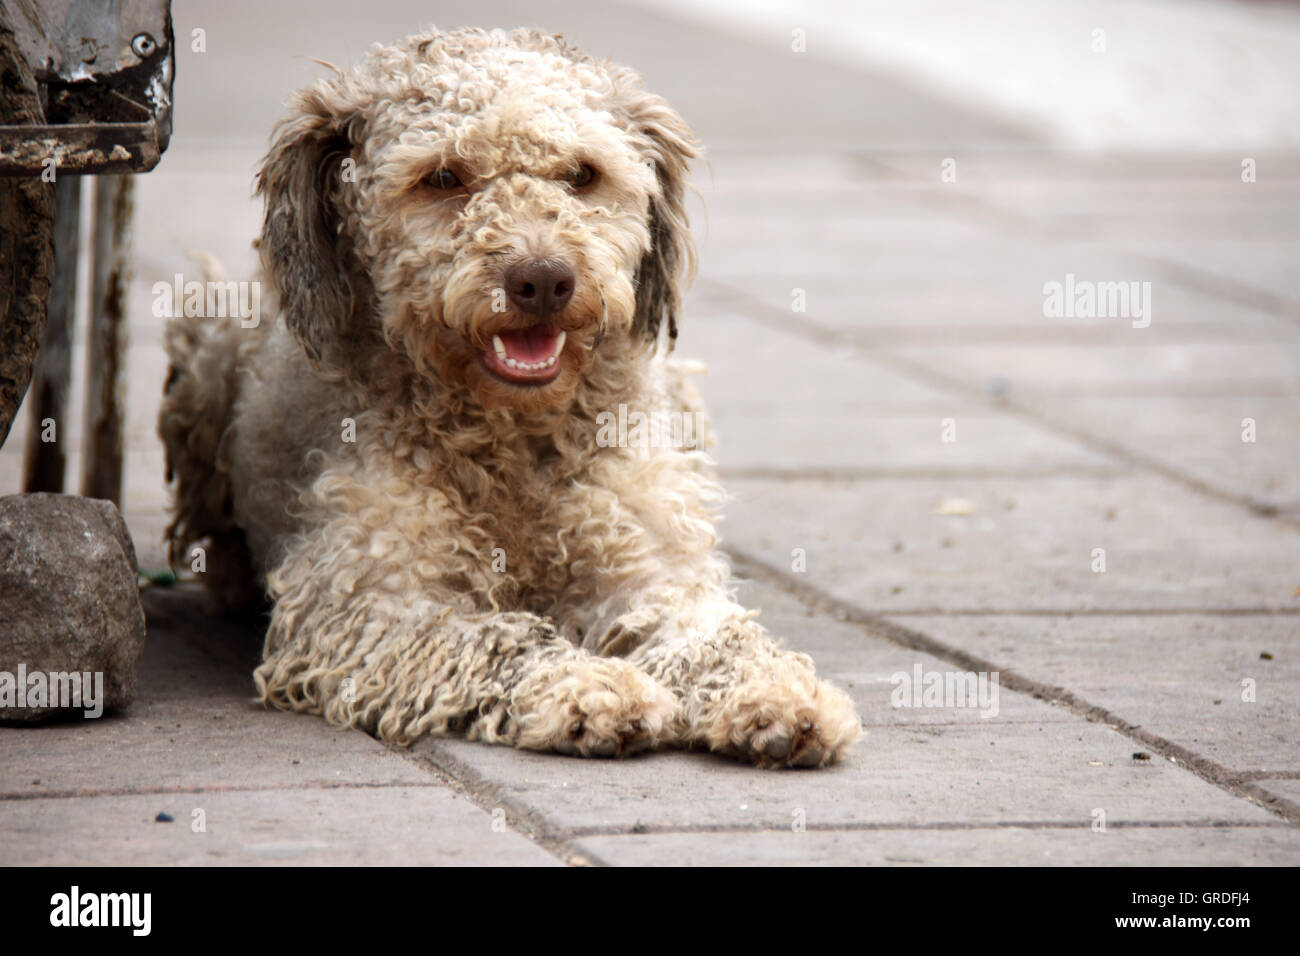 Abandoned smiling dog in the street - Stock Image